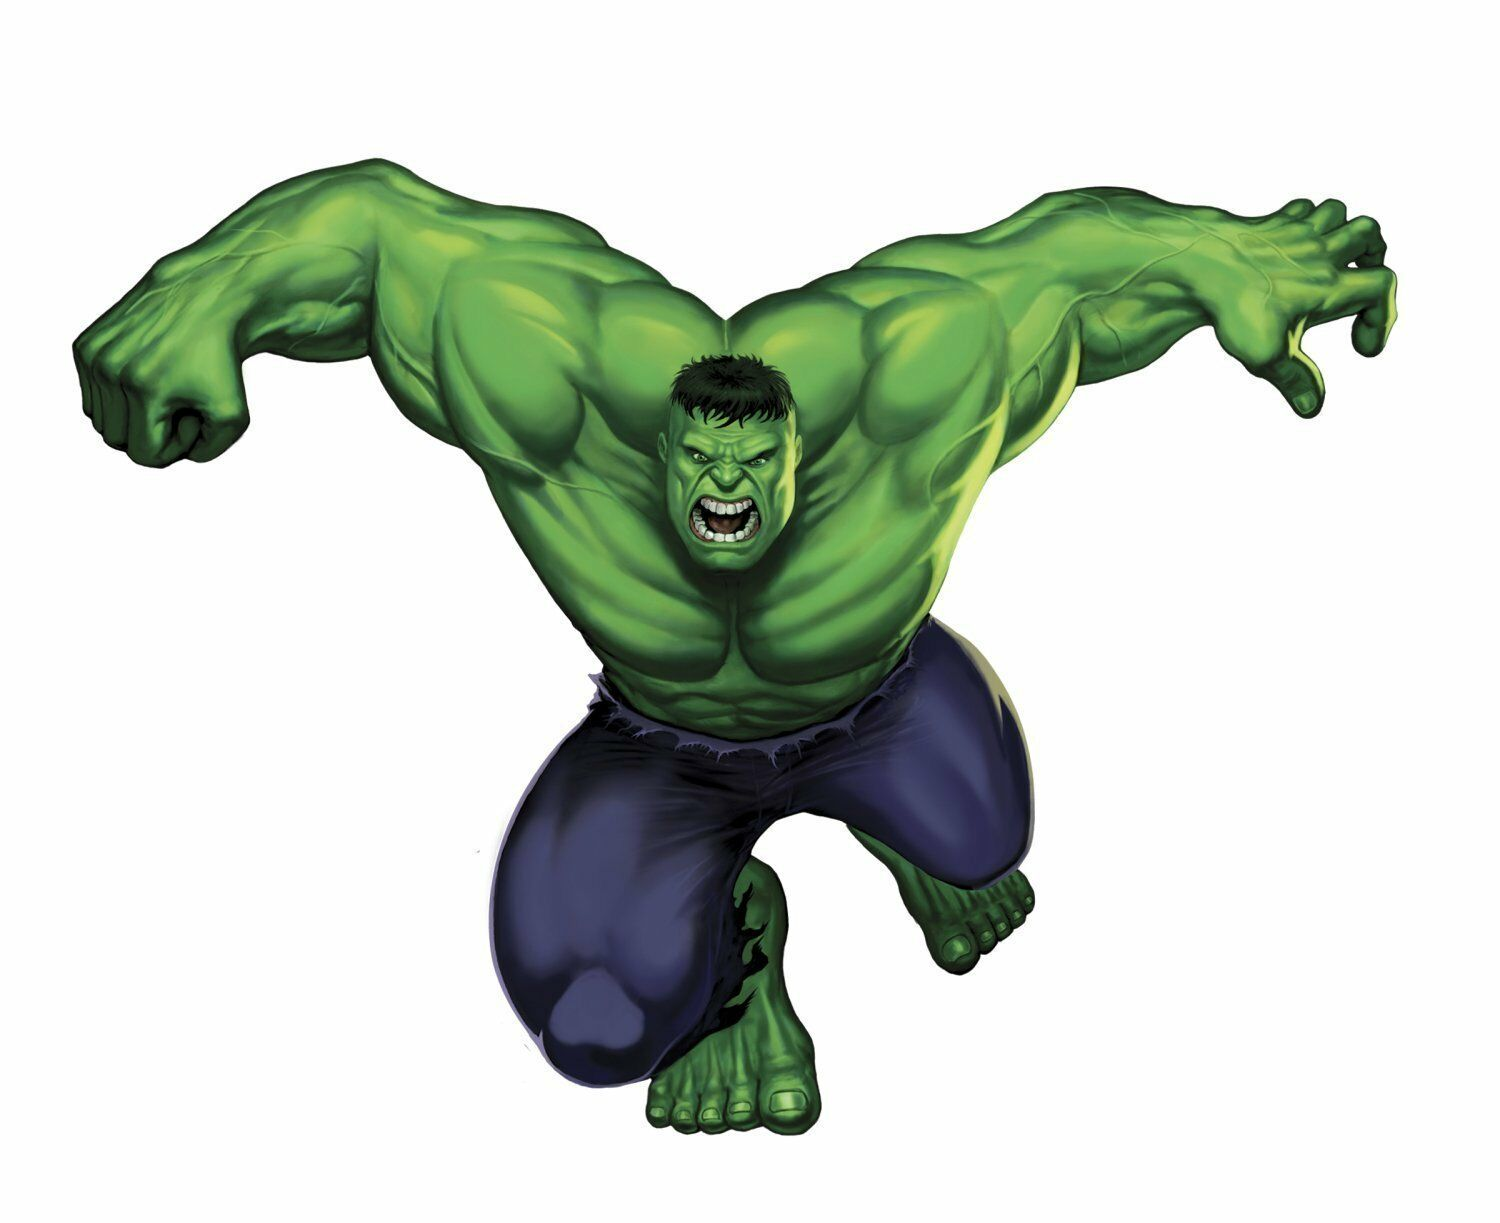 Marvel superheroes comic avengers the incredible hulk giant wall picture 1 of 3 amipublicfo Gallery